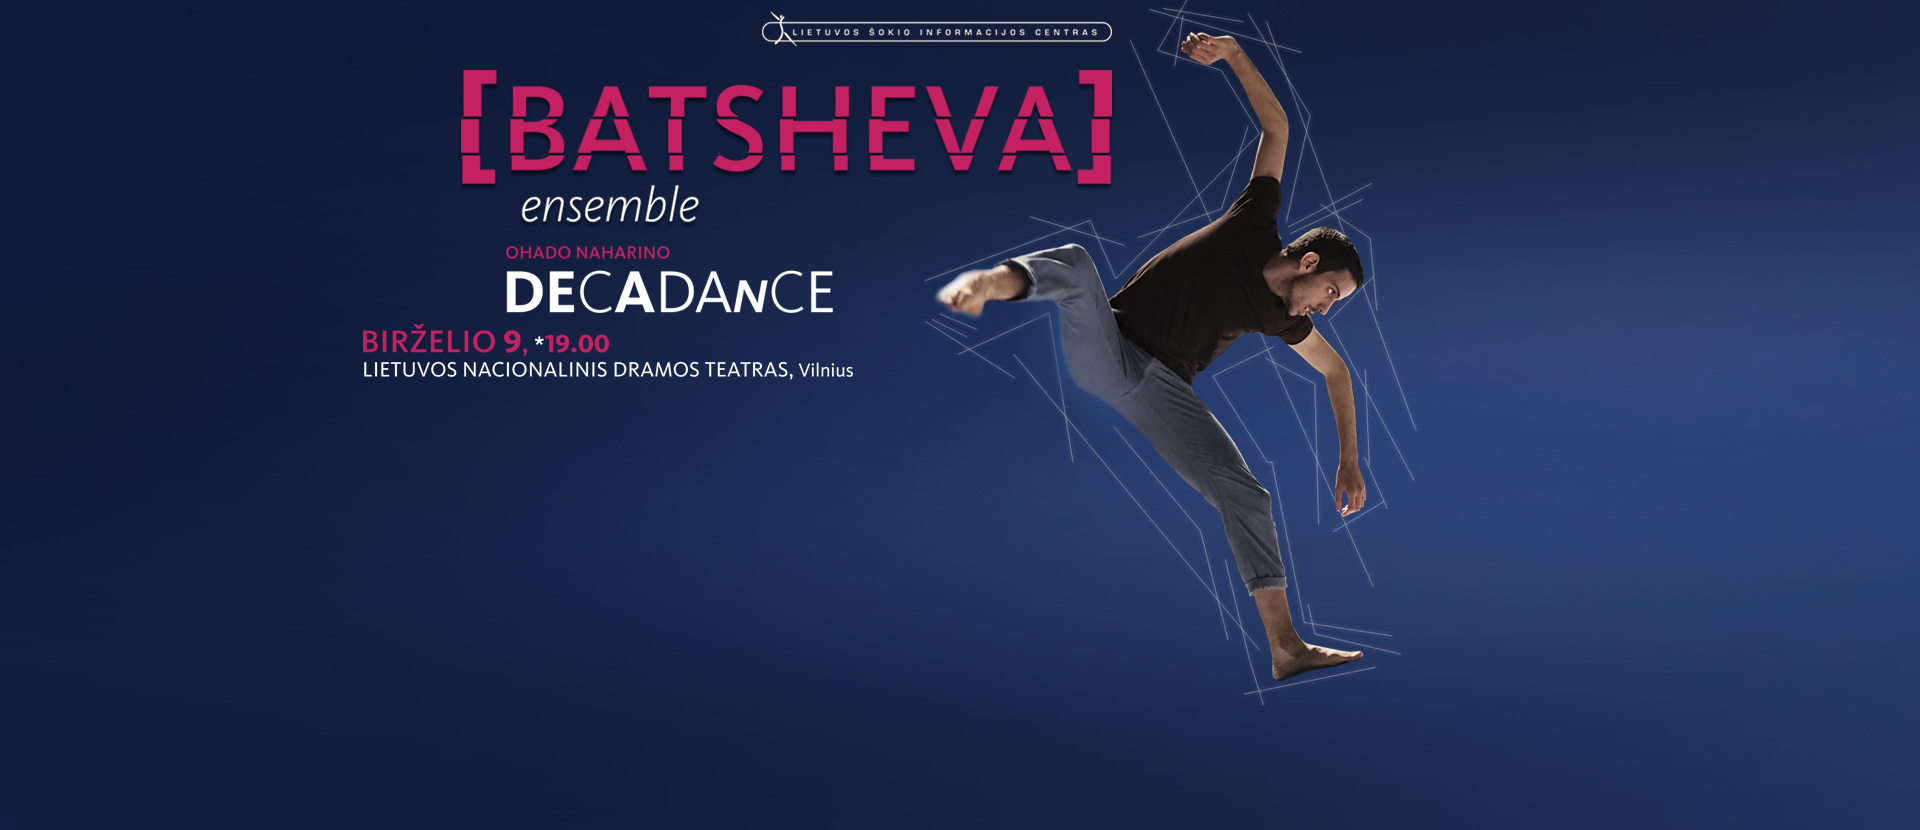 Batsheva Ensemble (Izraelis). Decadance